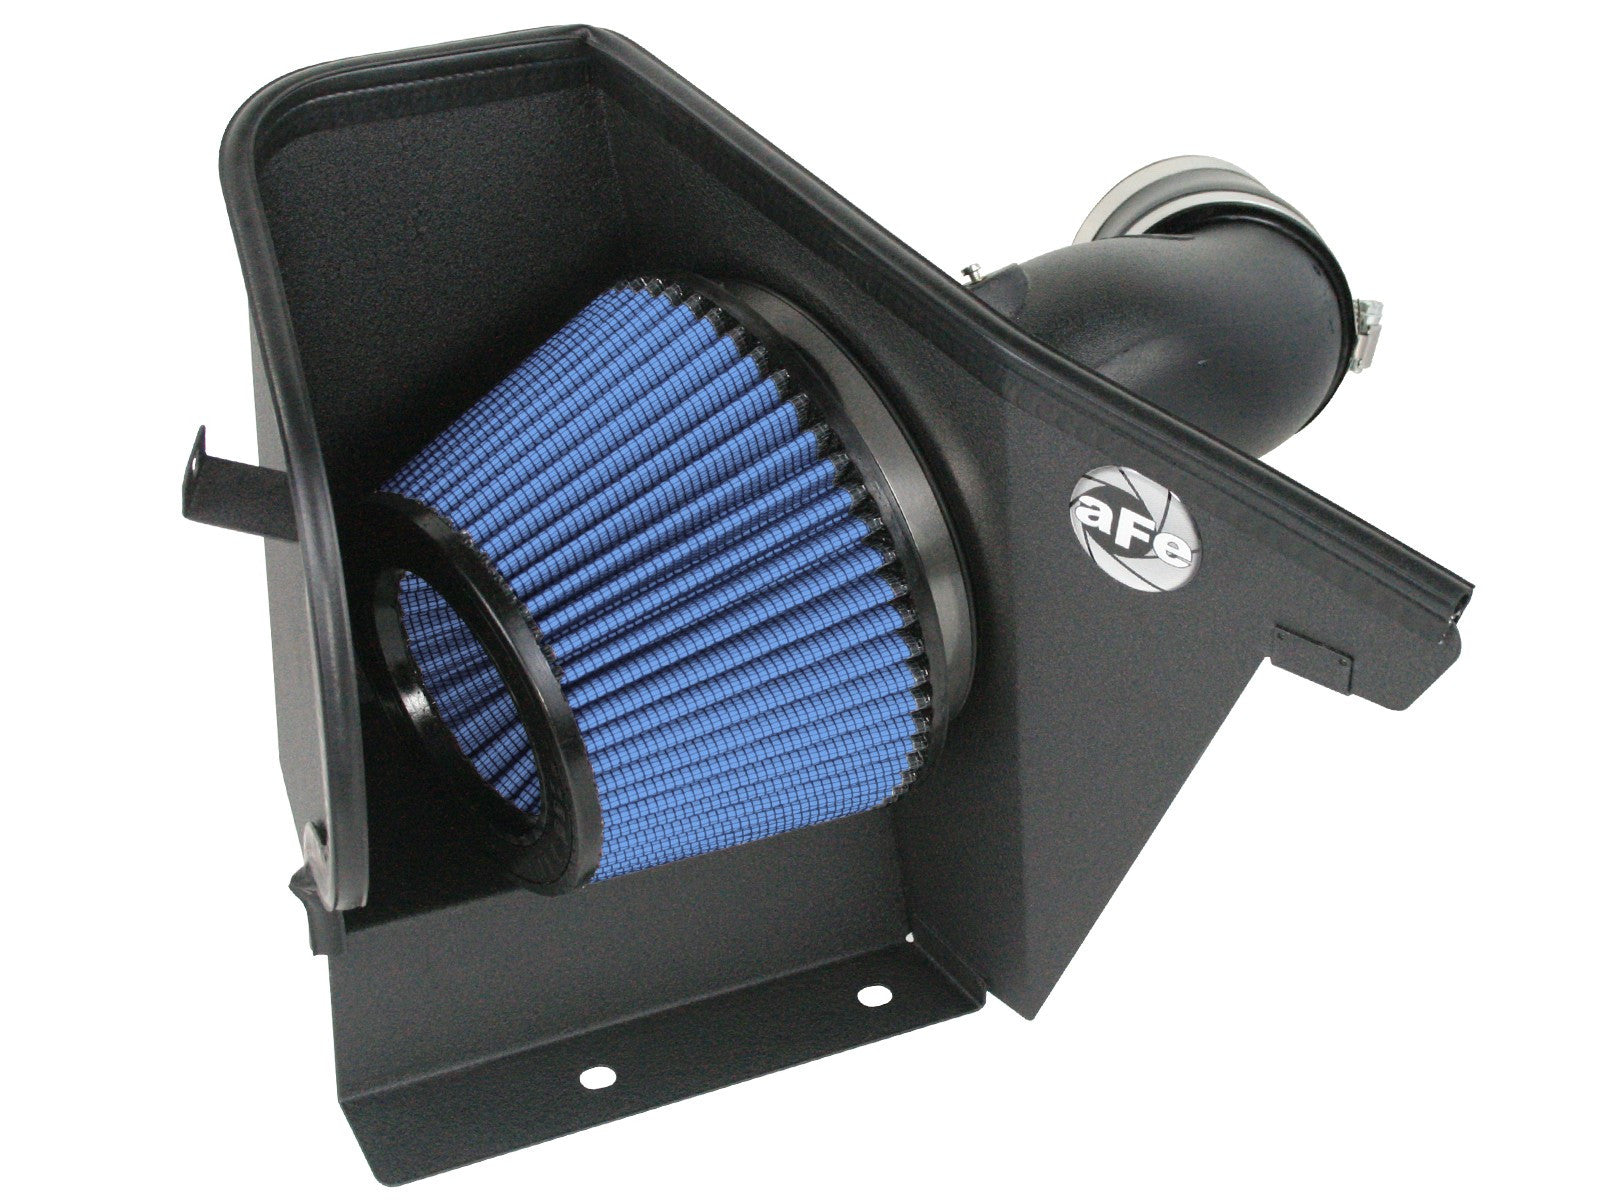 aFe POWER 5-Series (E60) 06-09 L6-3.0L Magnum FORCE Stage-2 Pro 5R Cold Air Intake System - Bimmer Performance Center